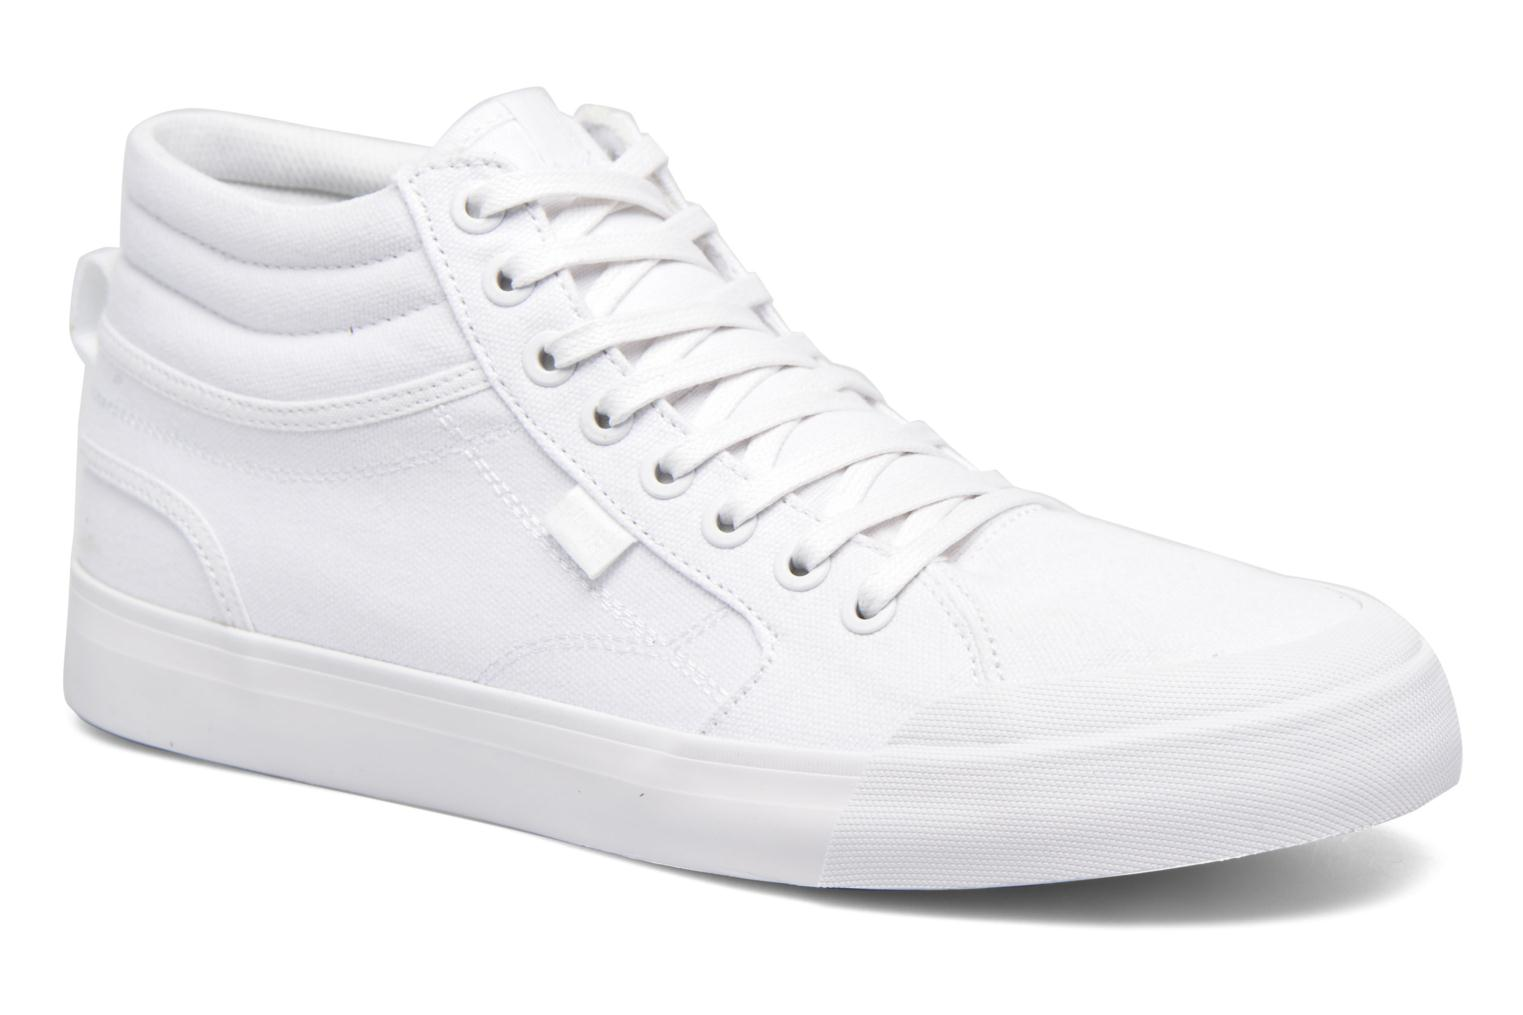 Marques Chaussure homme DC Shoes homme Evansmith Hi Tx M White/white